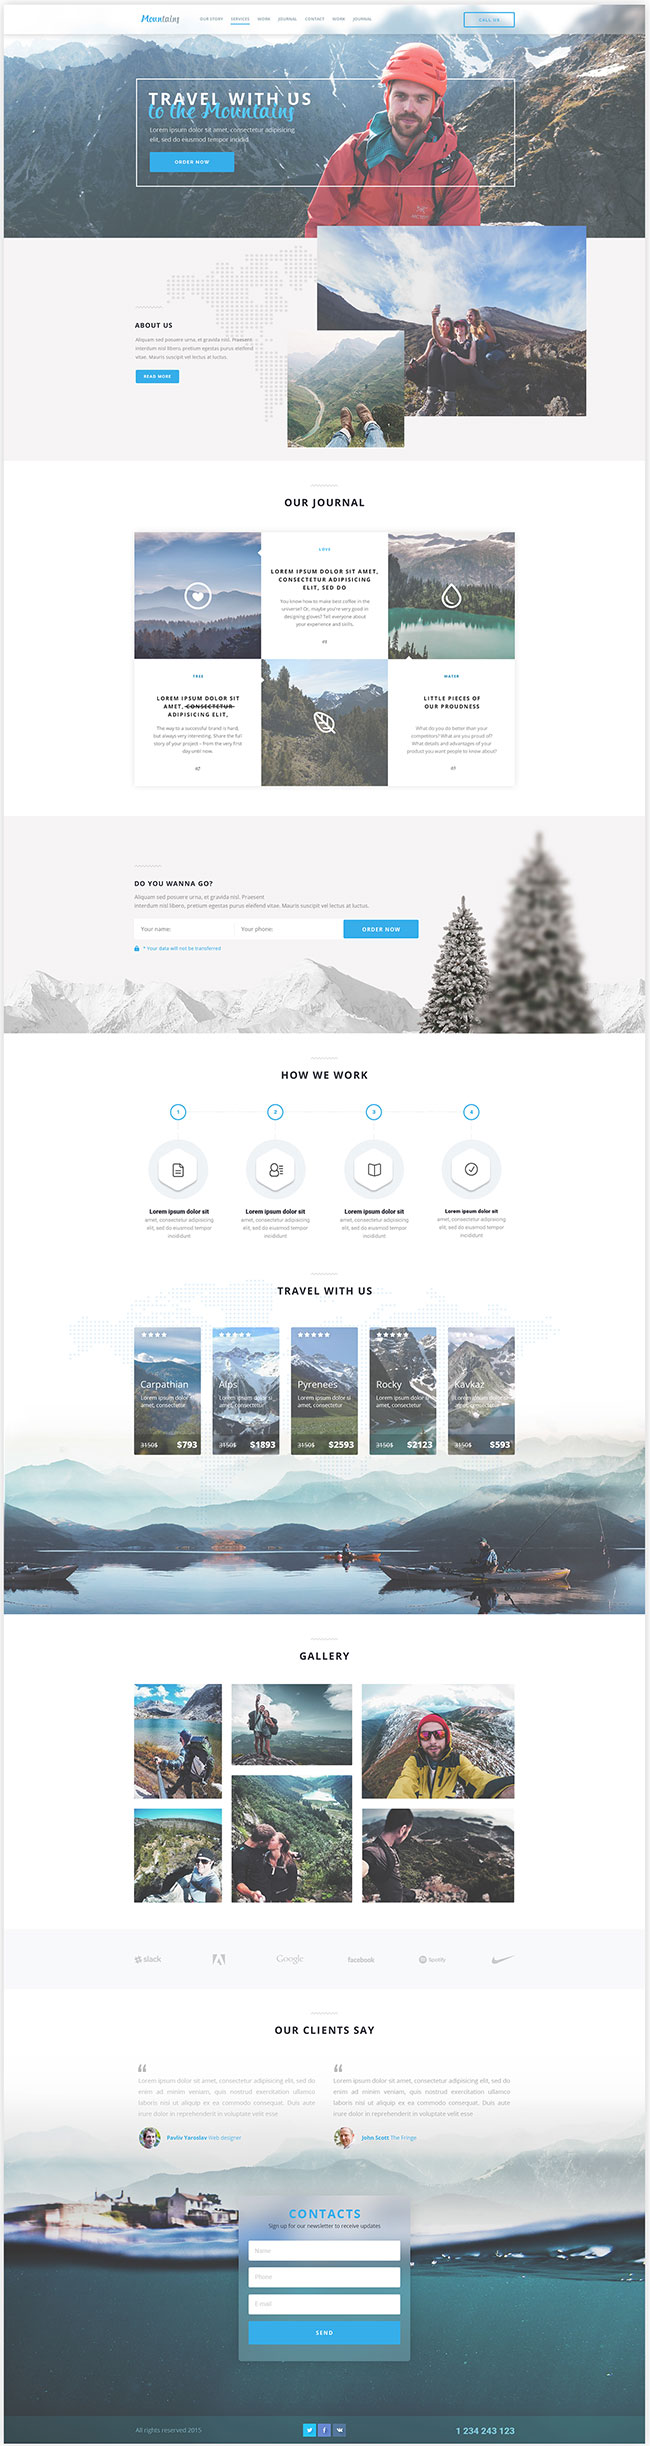 Mountains free travel landing page psd template free download mountains free travel landing page psd template pronofoot35fo Choice Image